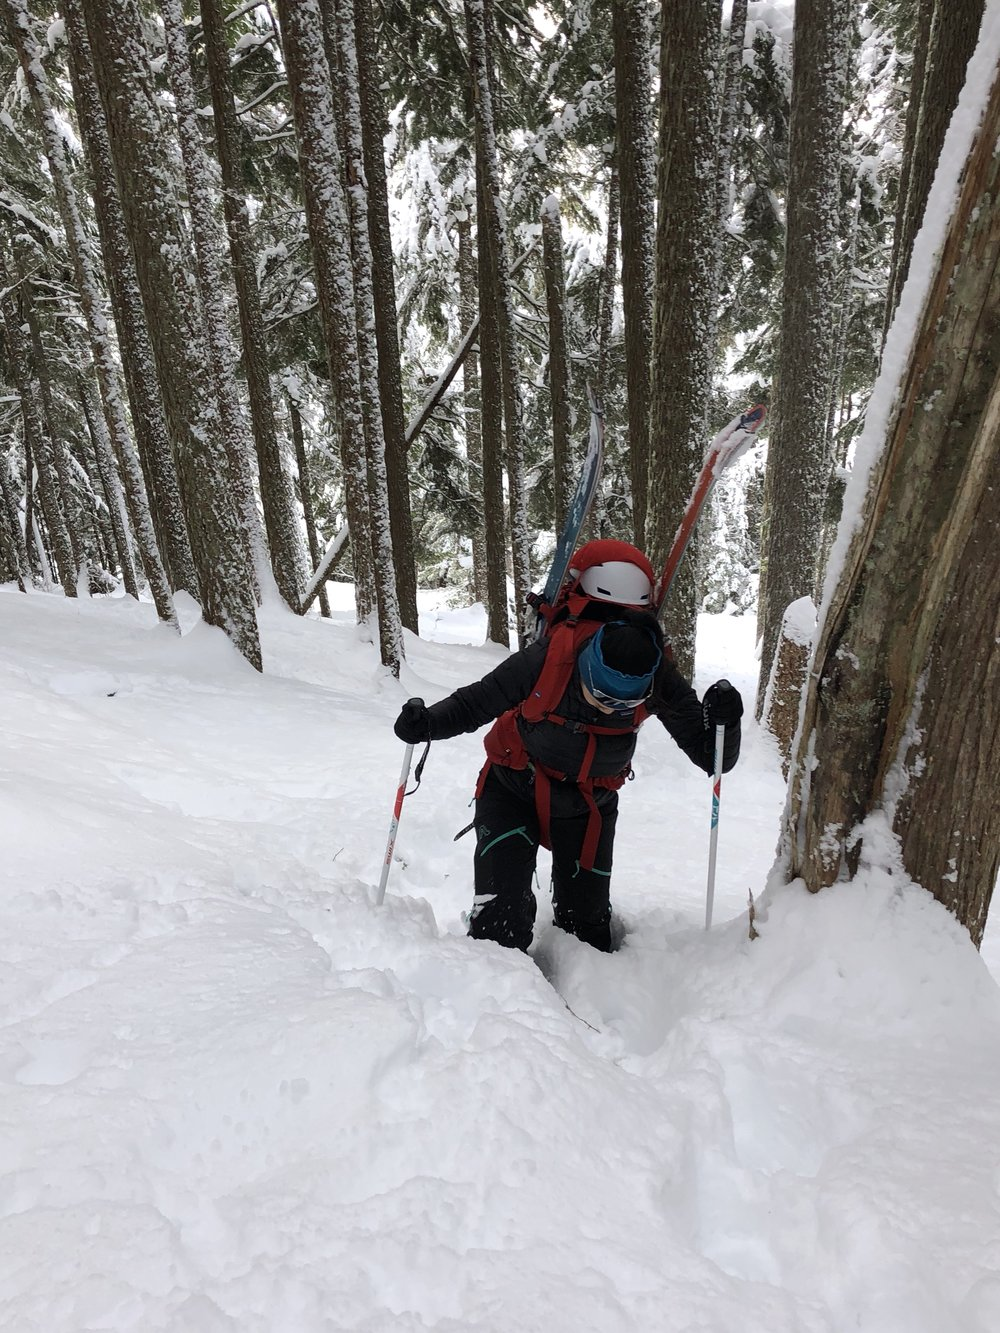 Booting up in knee-deep powder. Photo by Aaron.